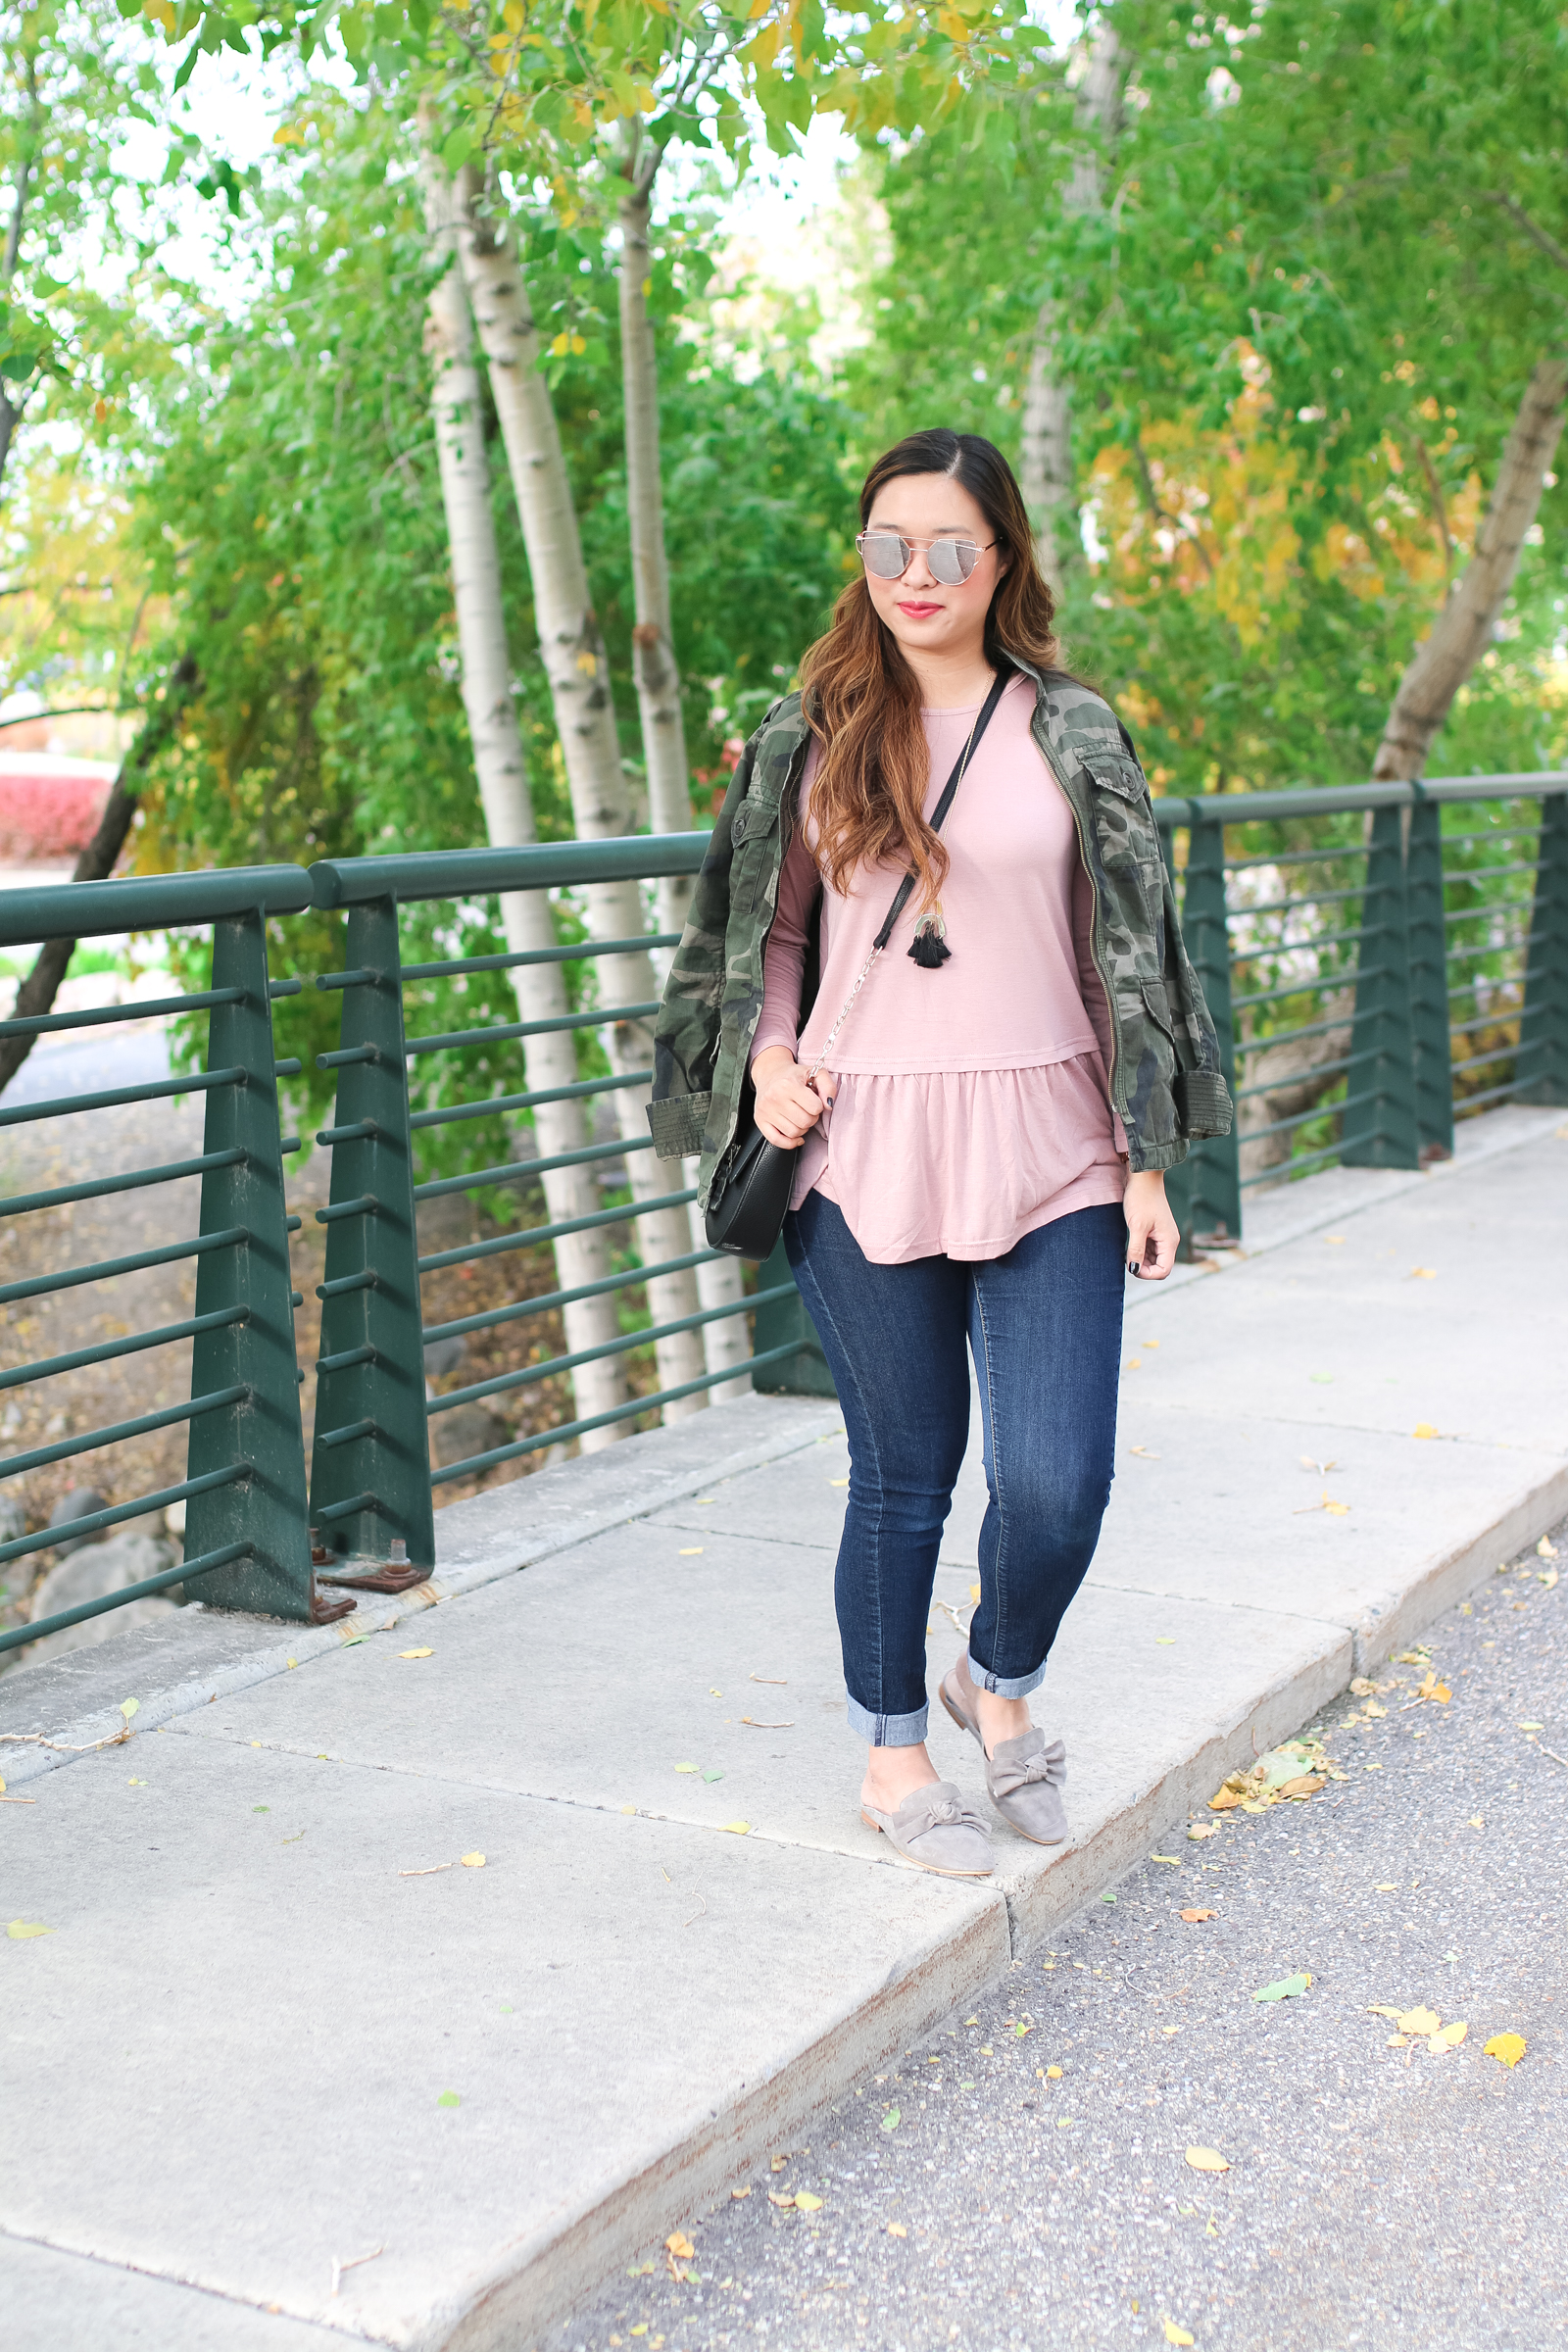 11 Trendy & Chic Camo Clothing For Fall by Utah fashion blogger Sandy A La Mode